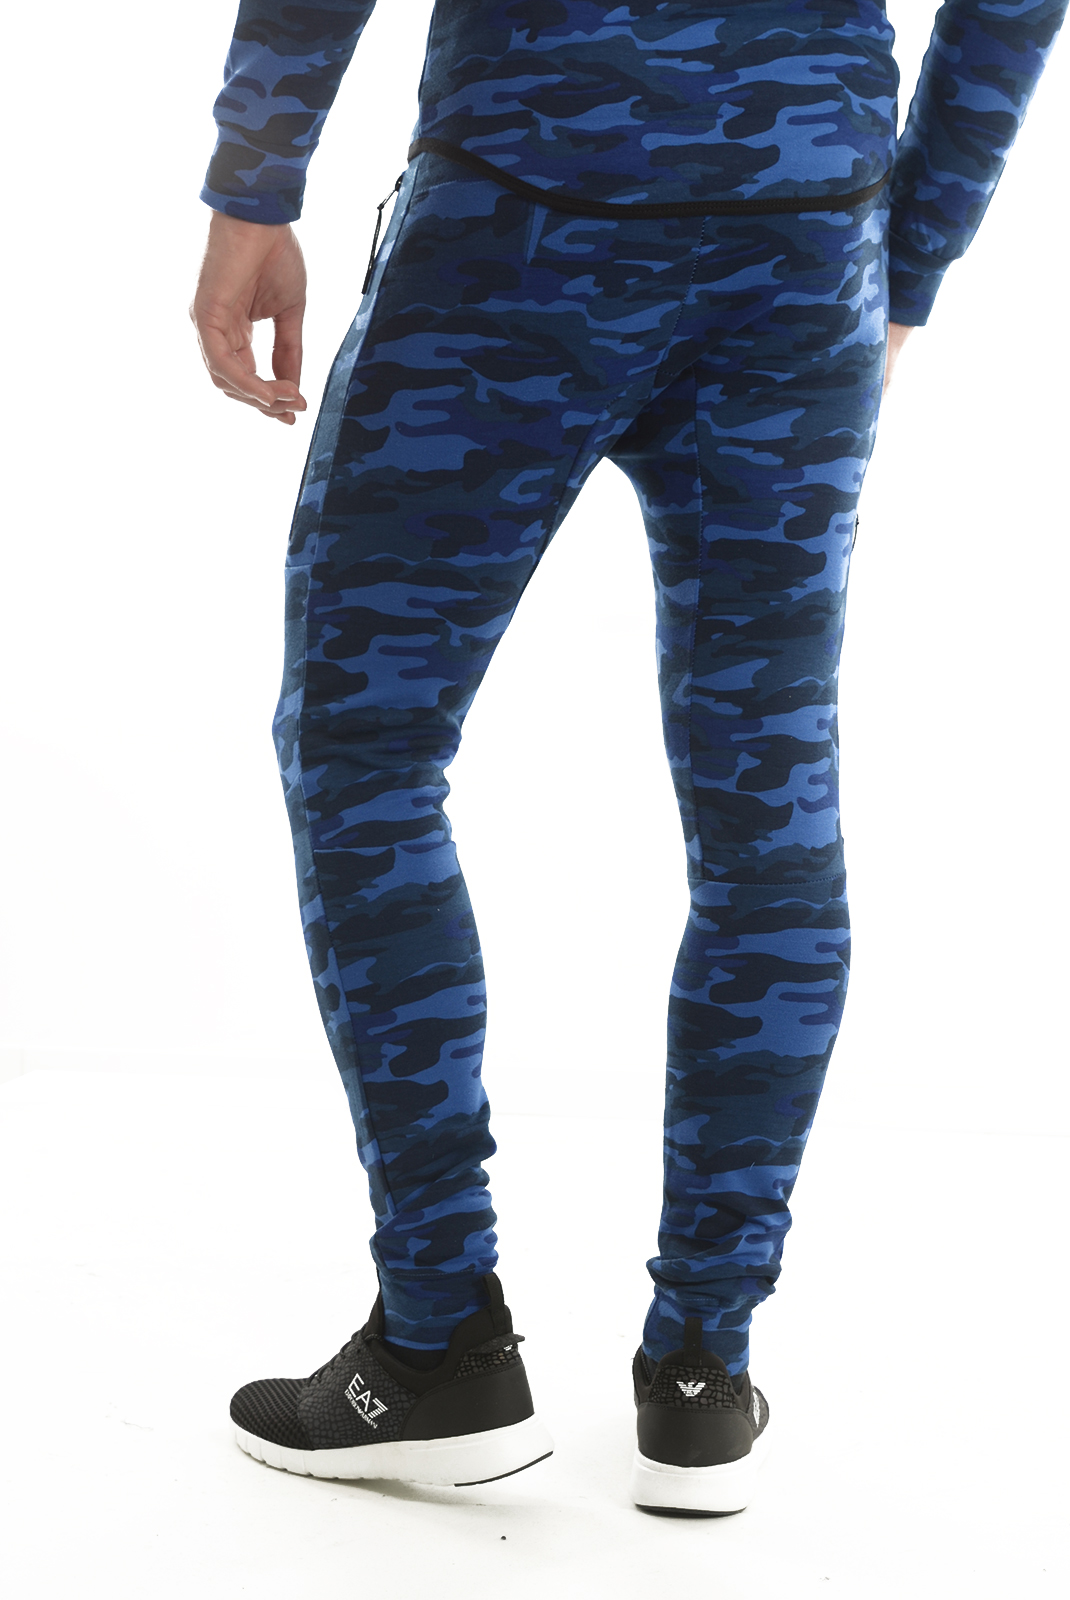 Survêtements  Apologize NAIVO CAMO BLUE